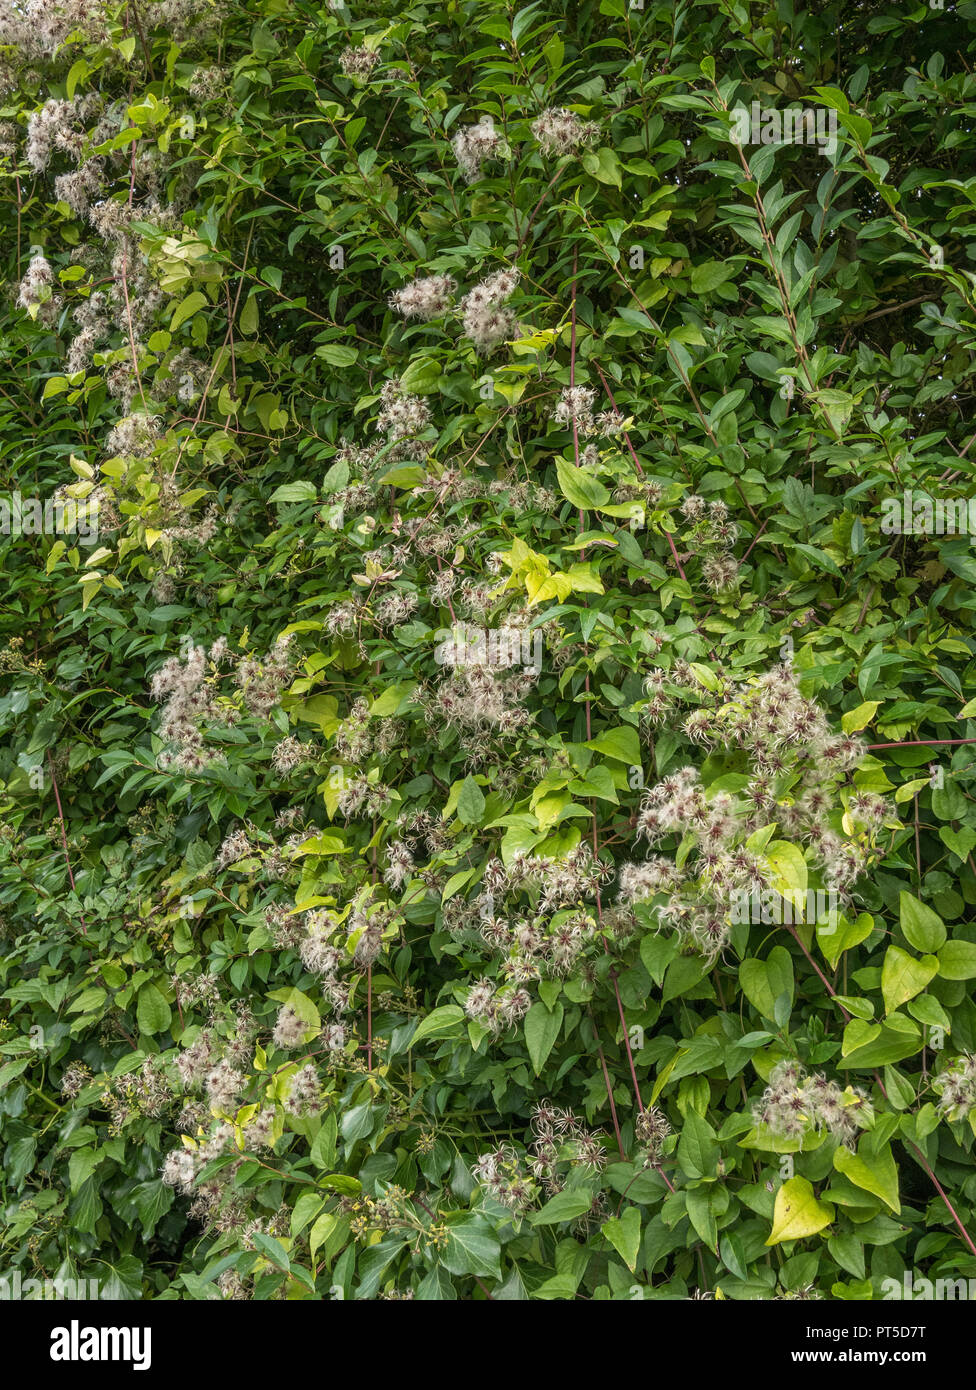 Autumnal Travellers Joy / Clematis vitalba - sprawling over a hedgerow. Plumed seeds visible. Parts are used as a medicinal plant in herbal remedies. - Stock Image